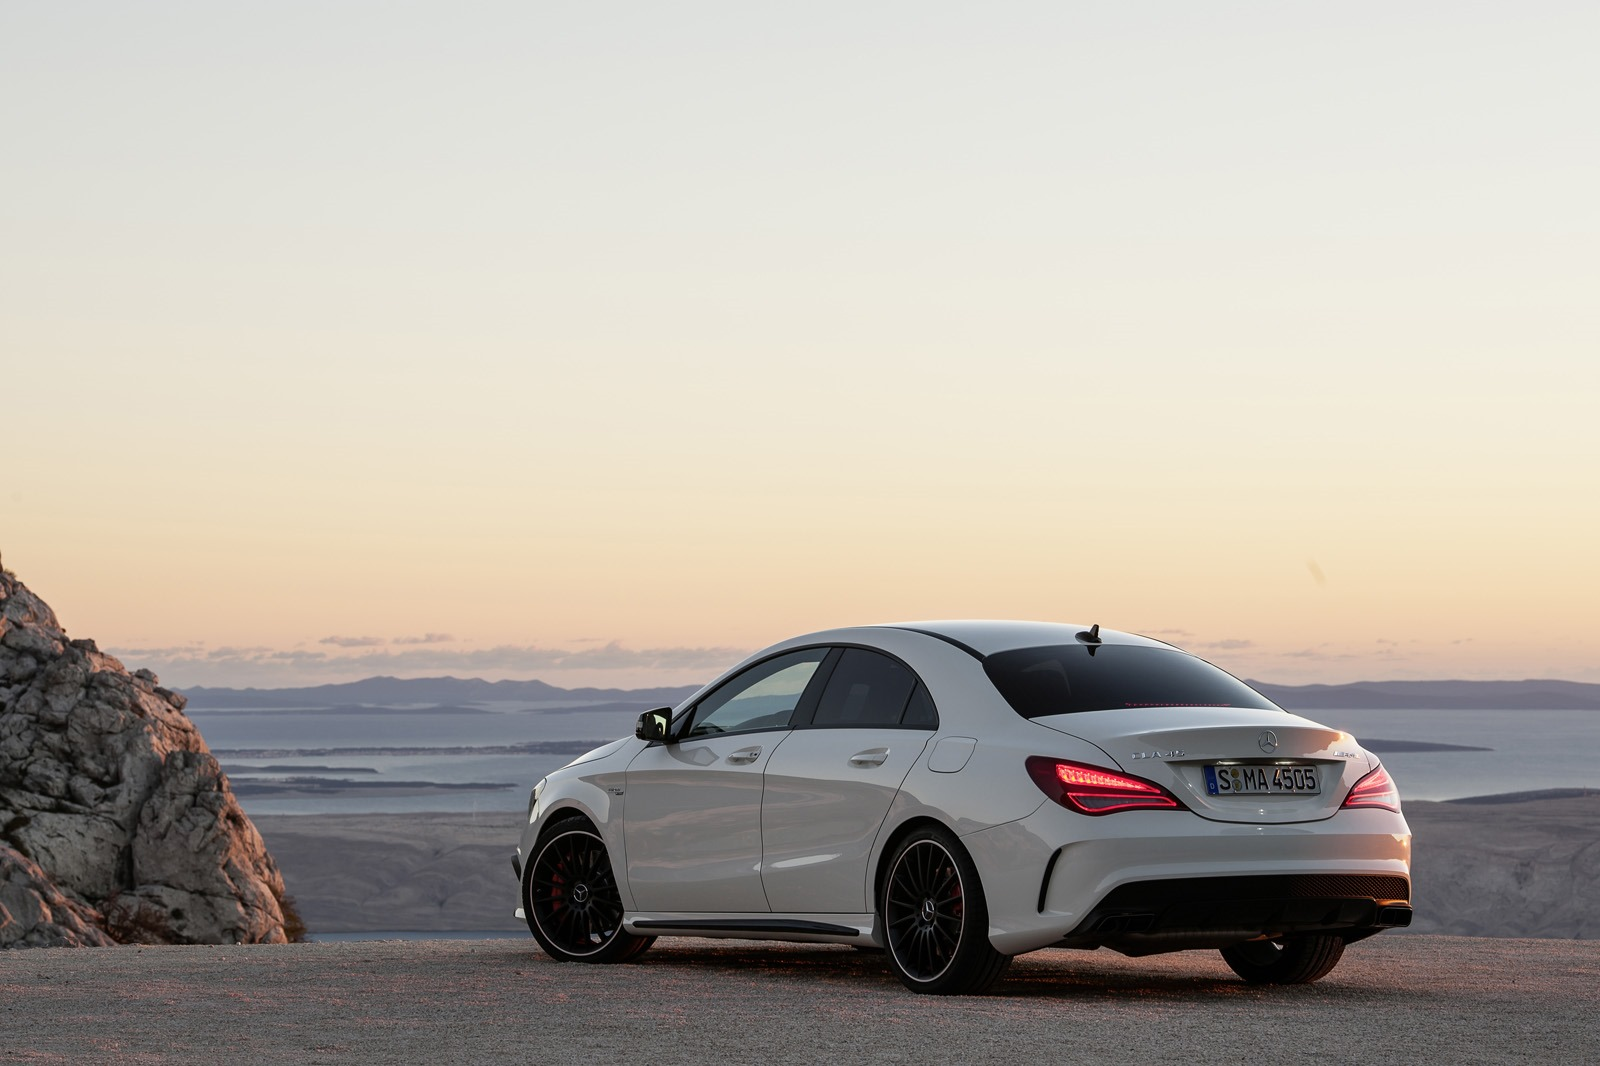 2014 Mercedes CLA 45 AMG Priced from $47,450